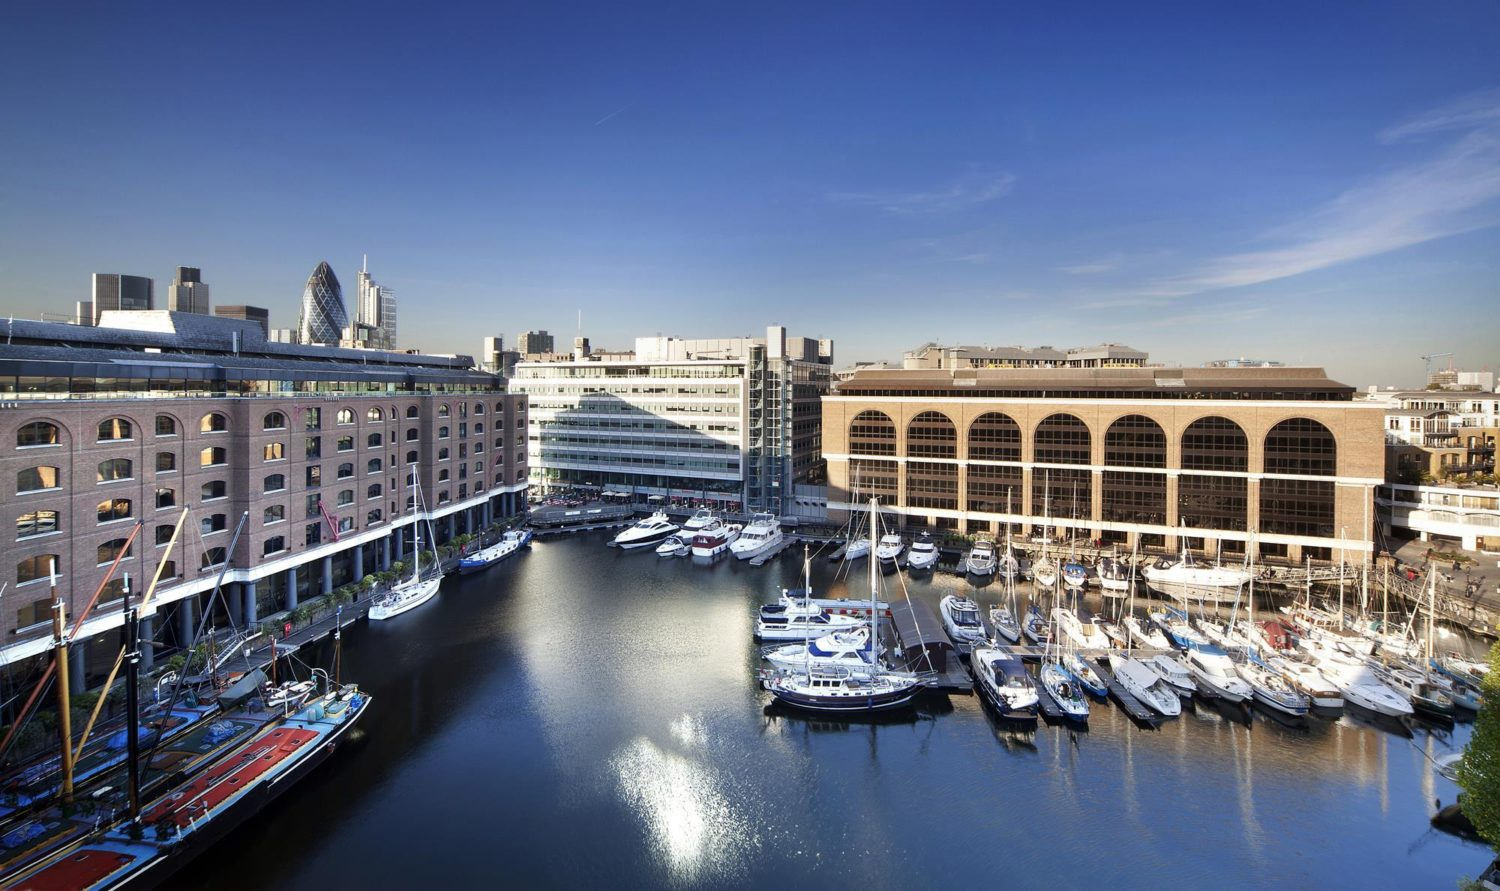 Aerial view of St Katherine Dock in London. Sunny day with blue skies looking over the marina and buildings